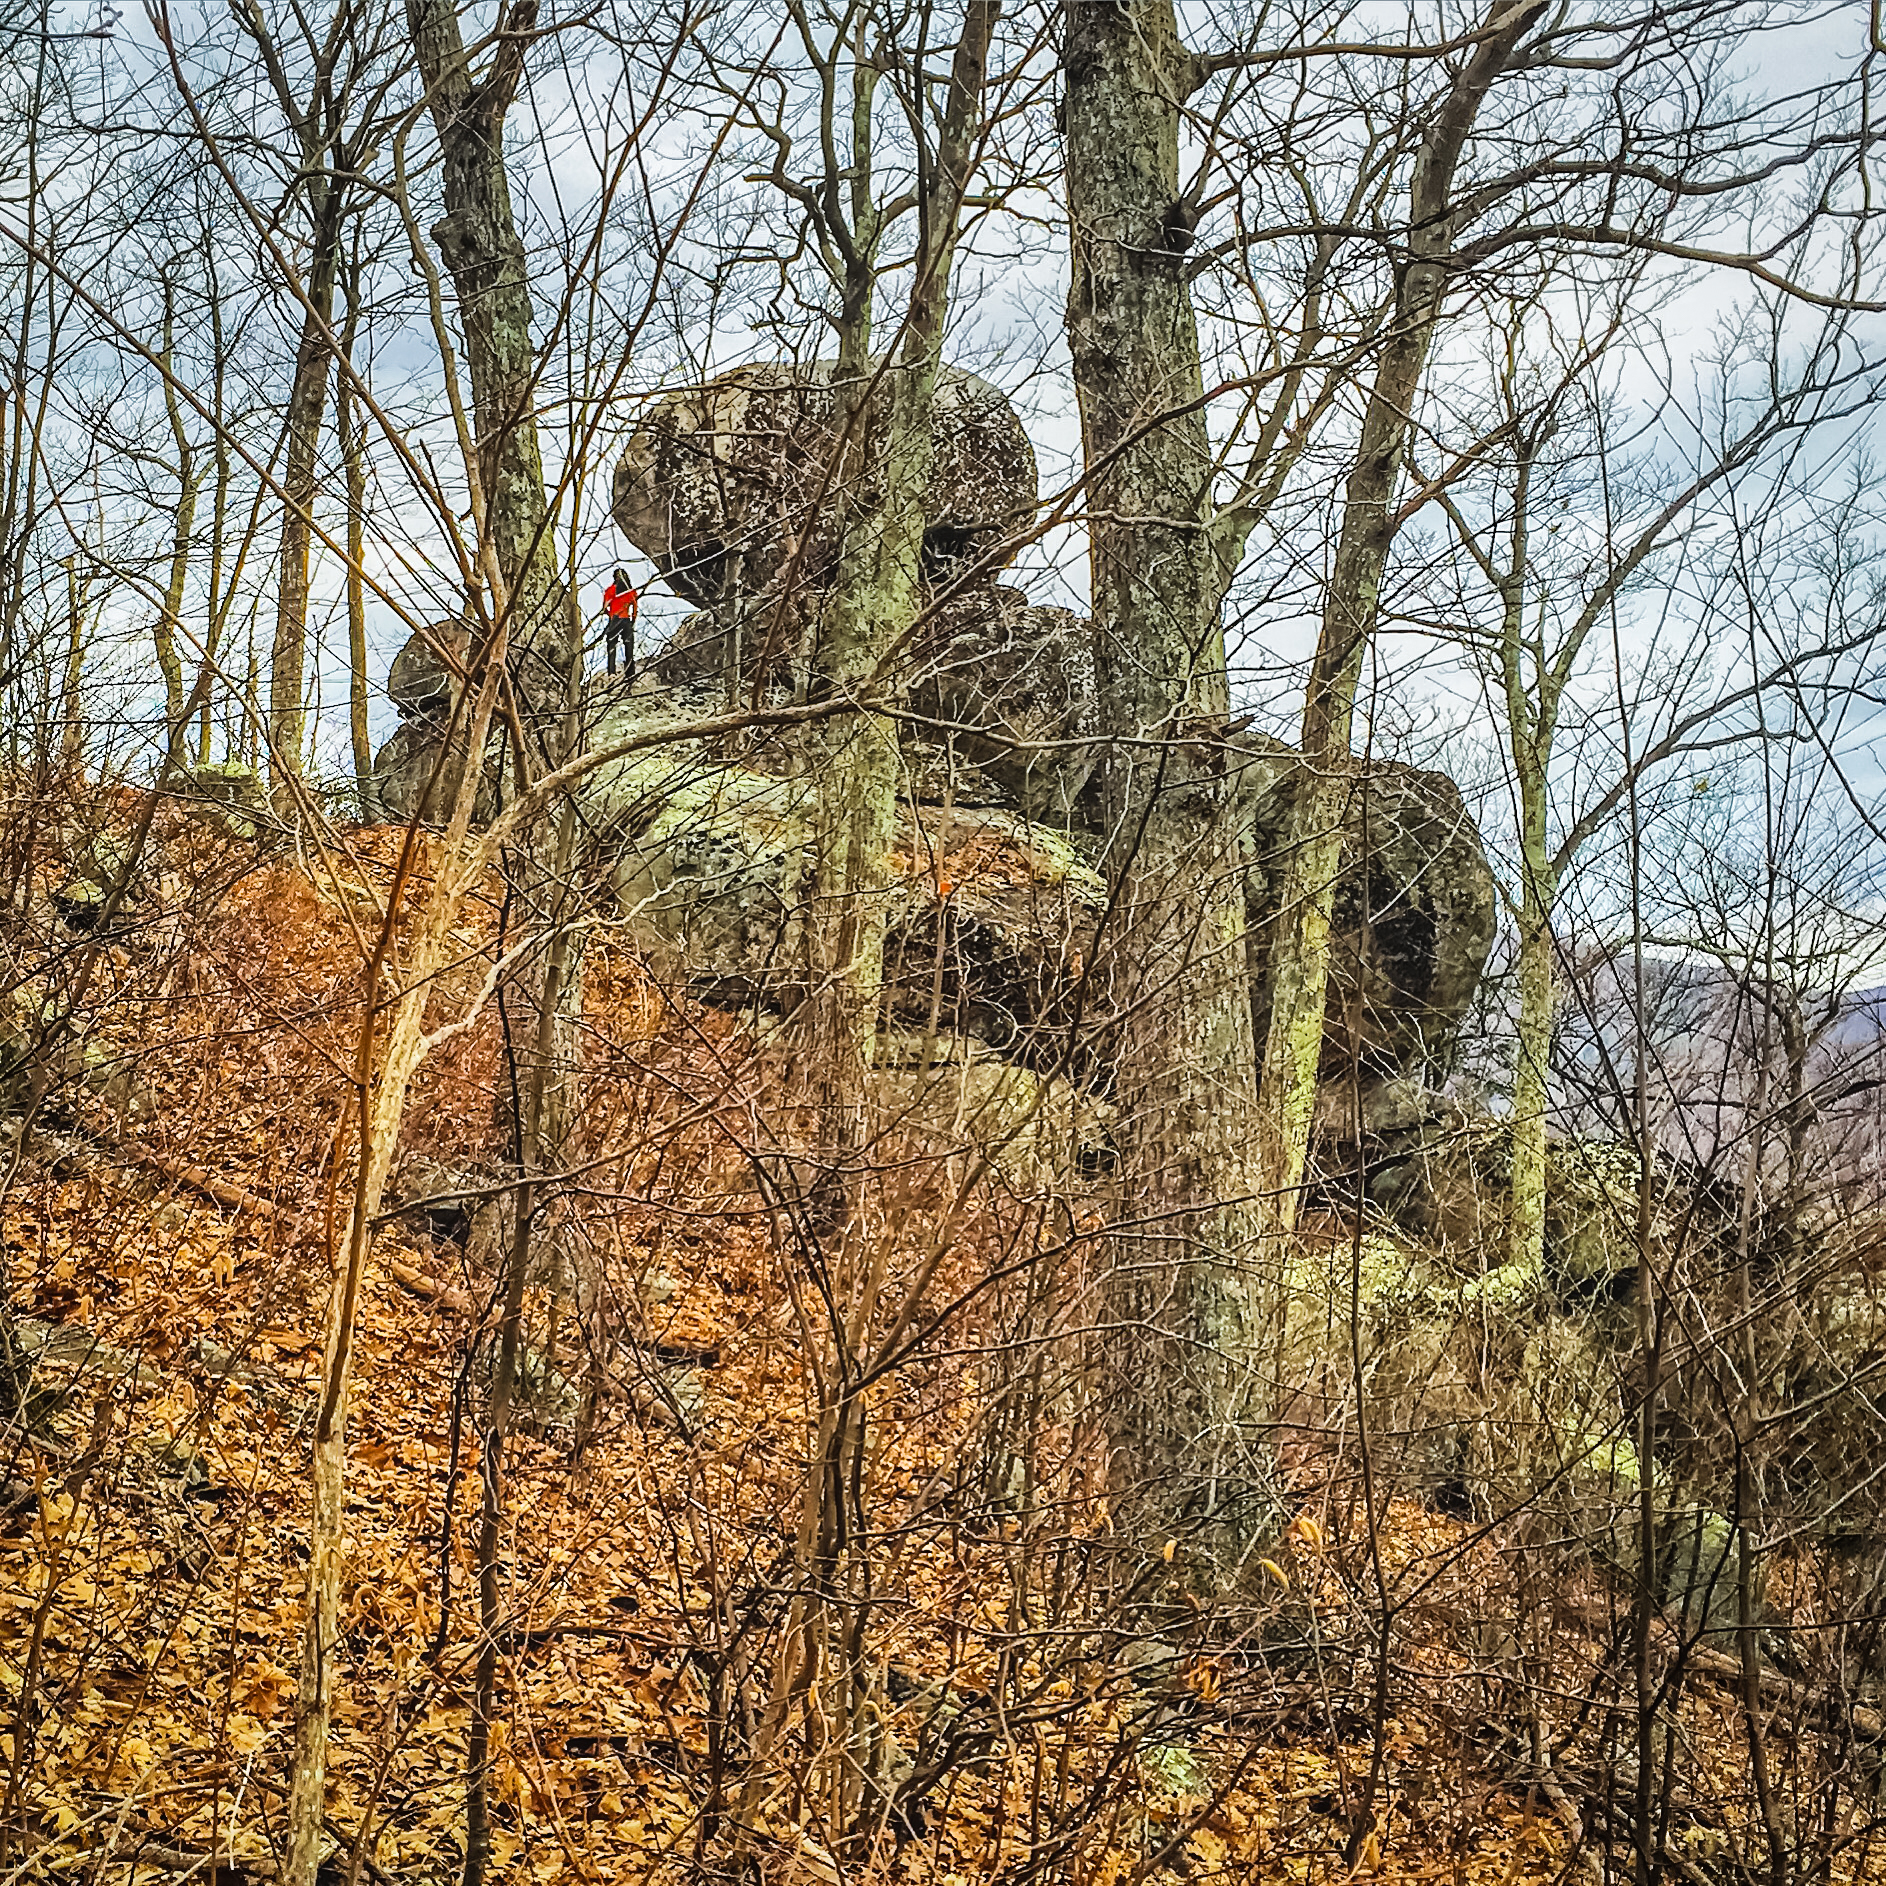 Bushwhacking to Balance Rock